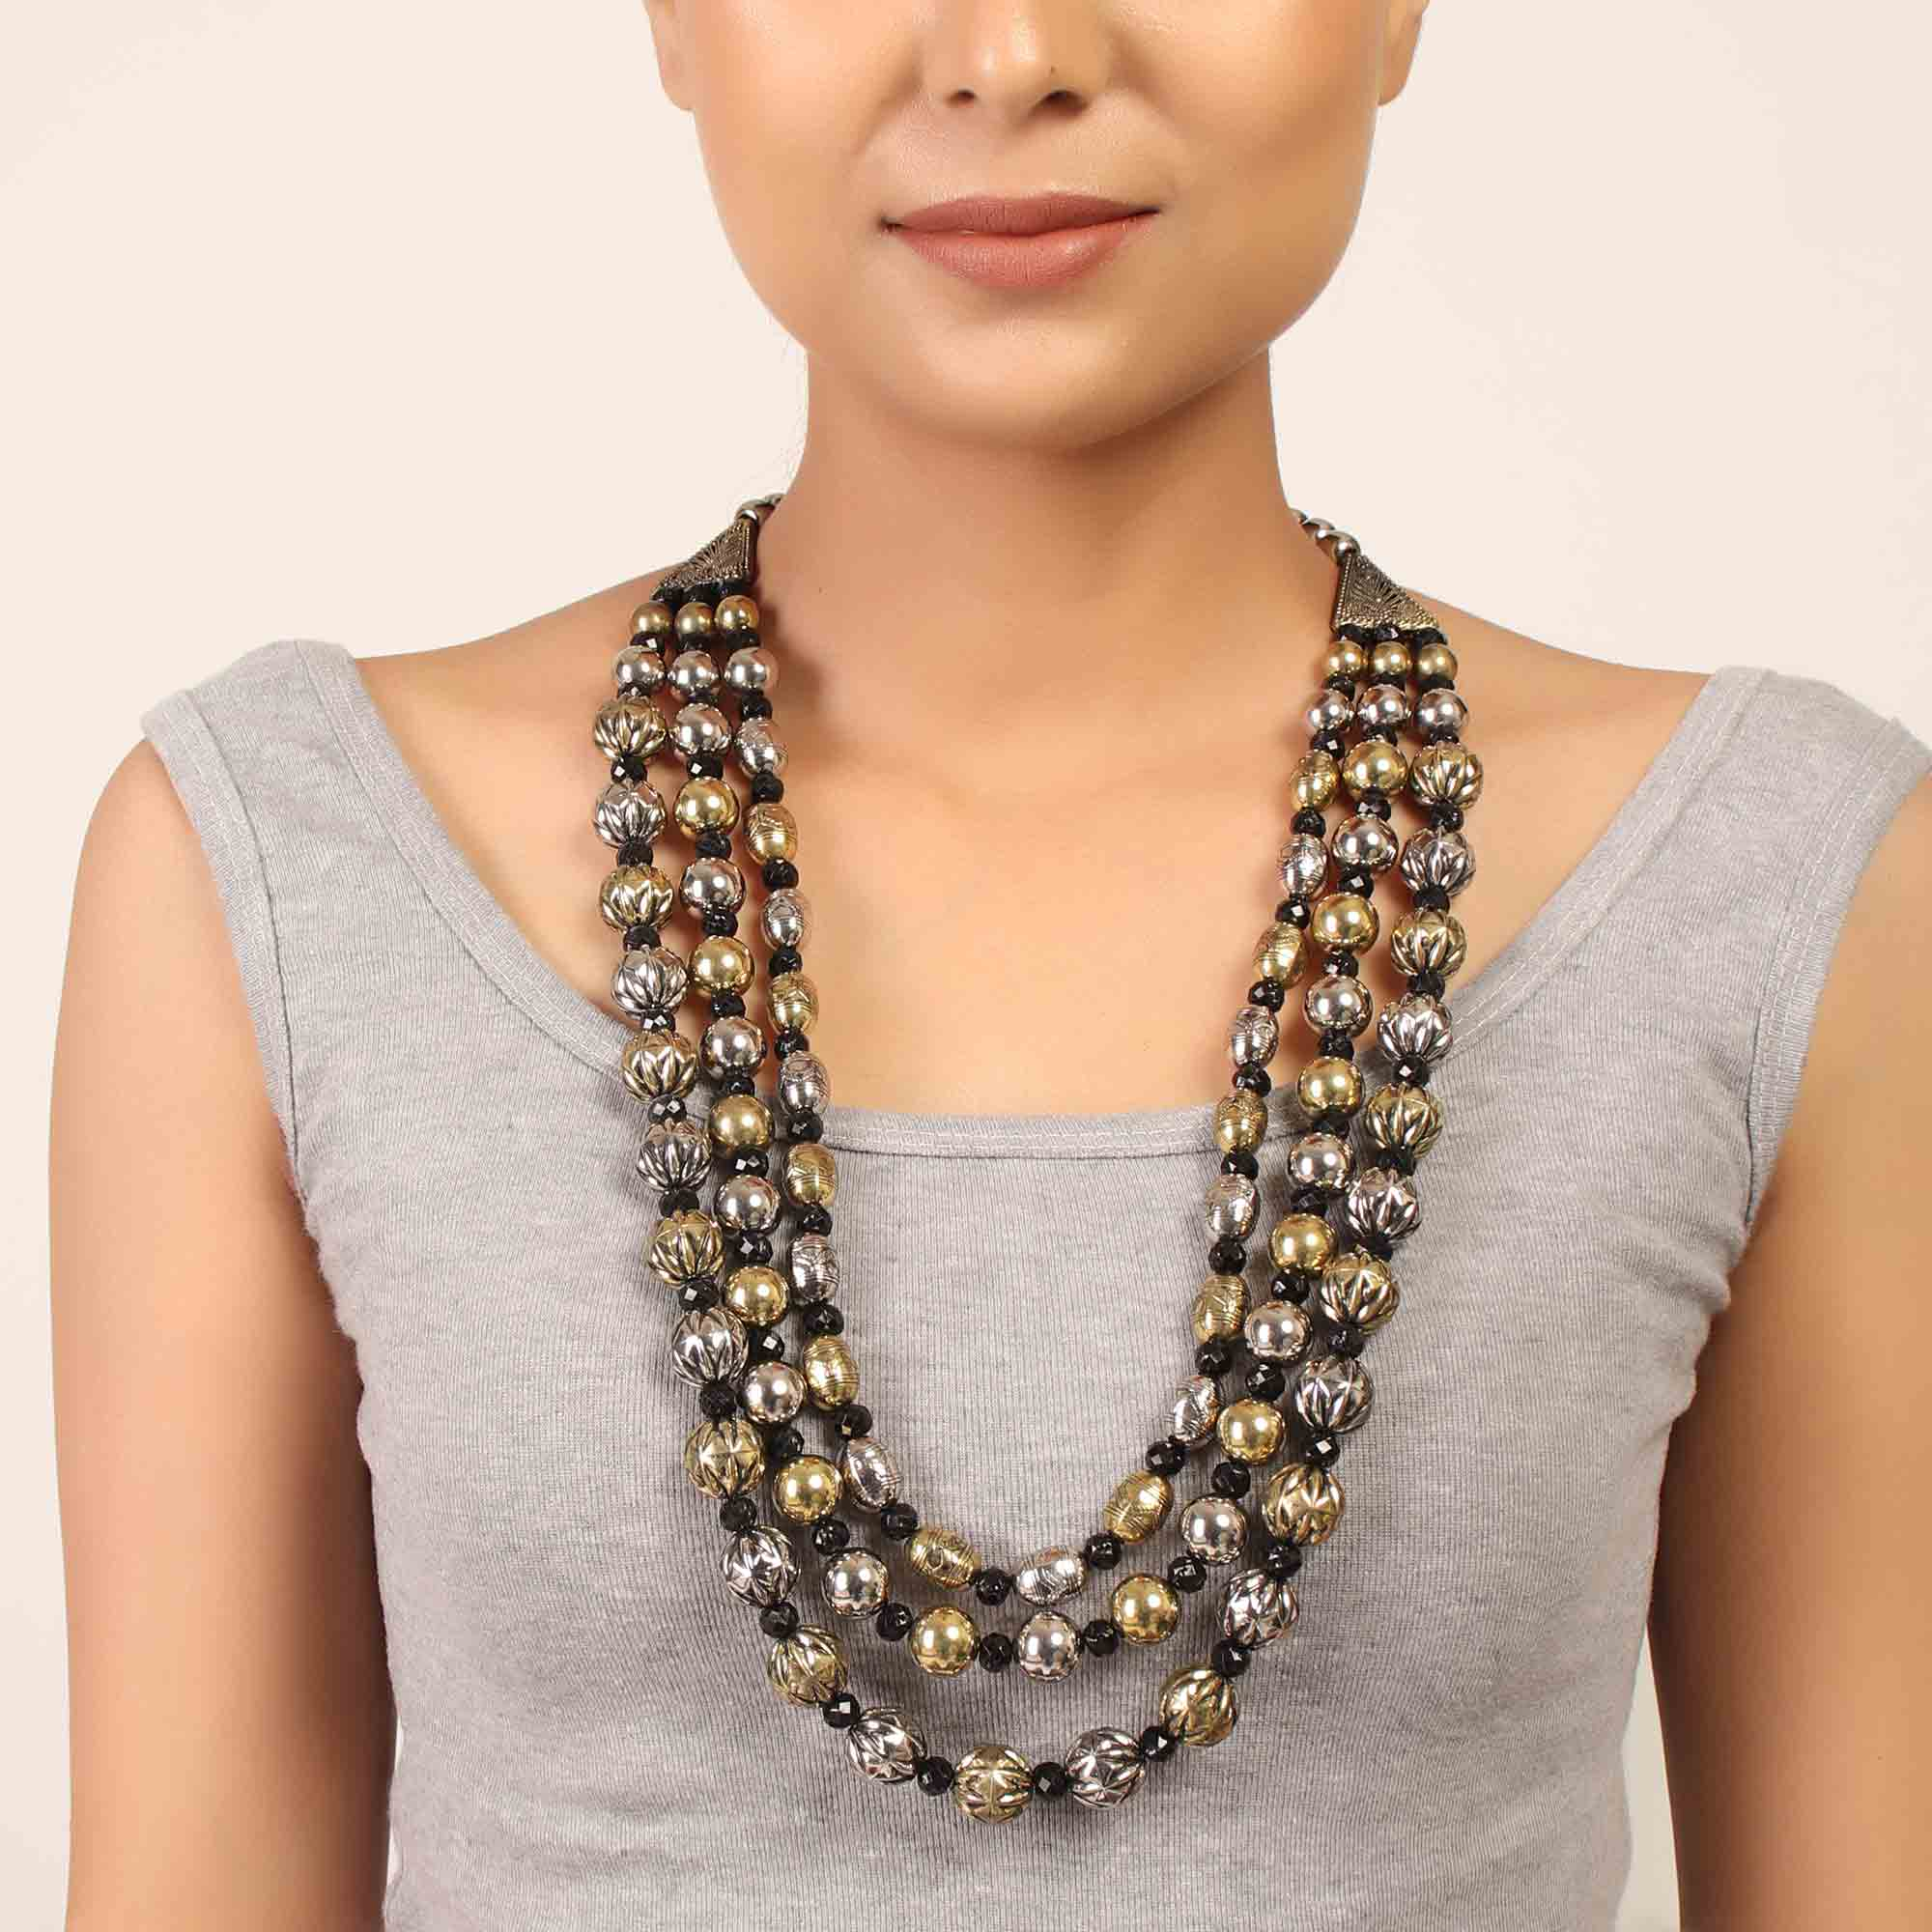 Necklace,The Chocolate Pallet Layered Necklace - Cippele Multi Store